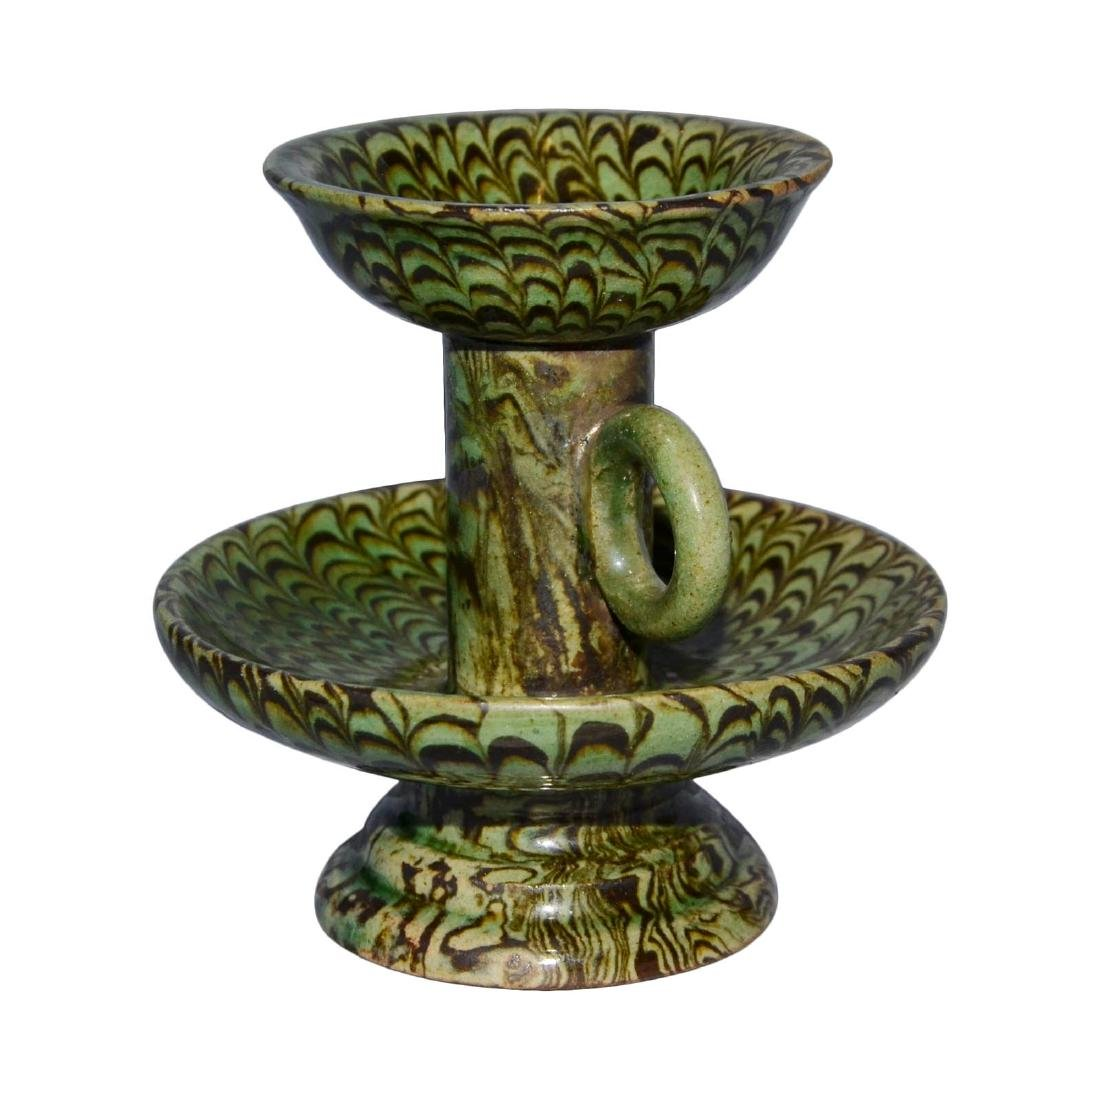 Song, A Rare Green-Glazed Marbled Pottery Lamp with - 5